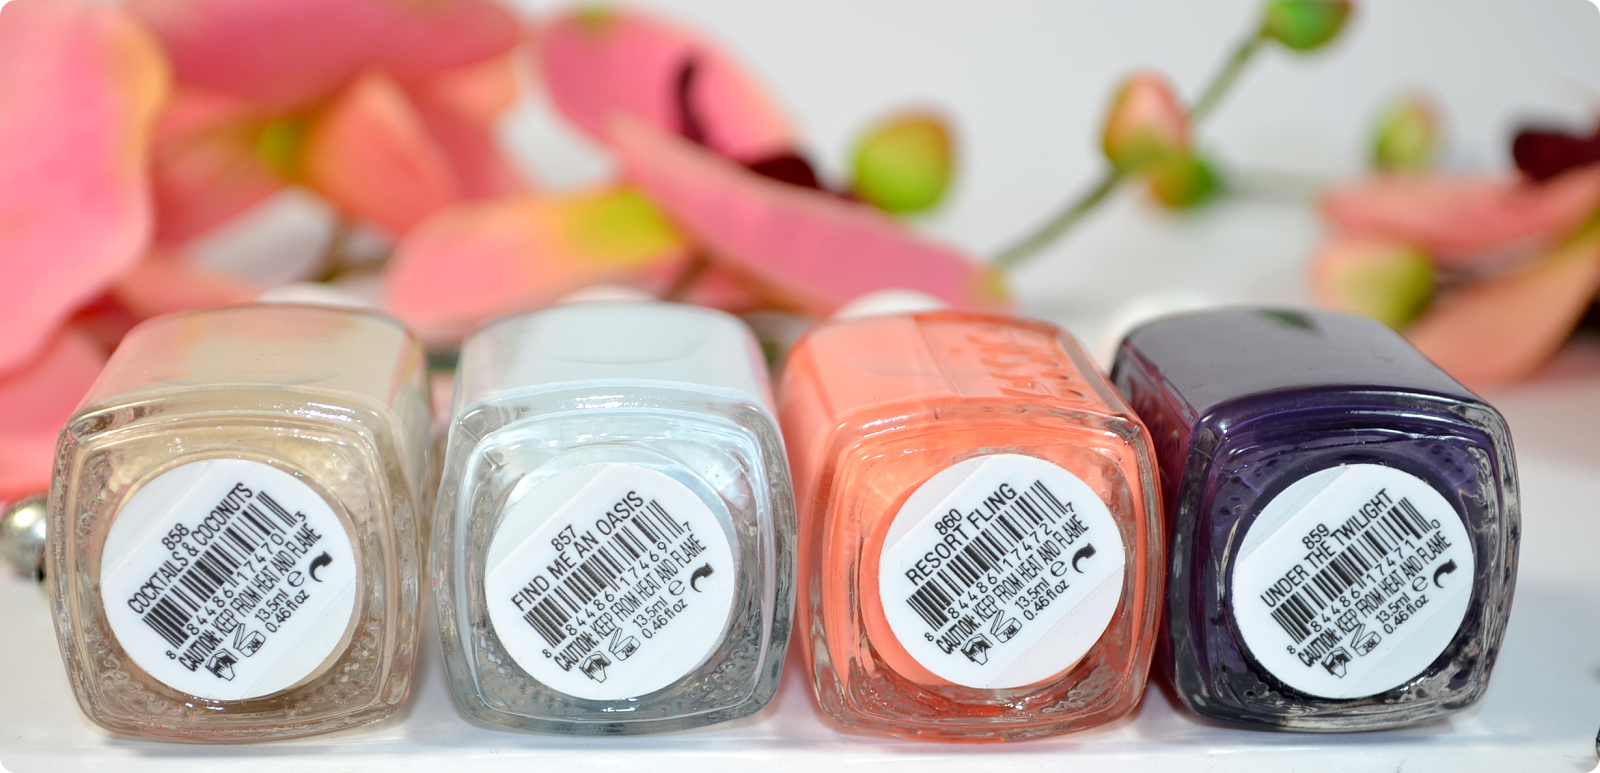 essie Resort 2014 Collection Review + Swatches